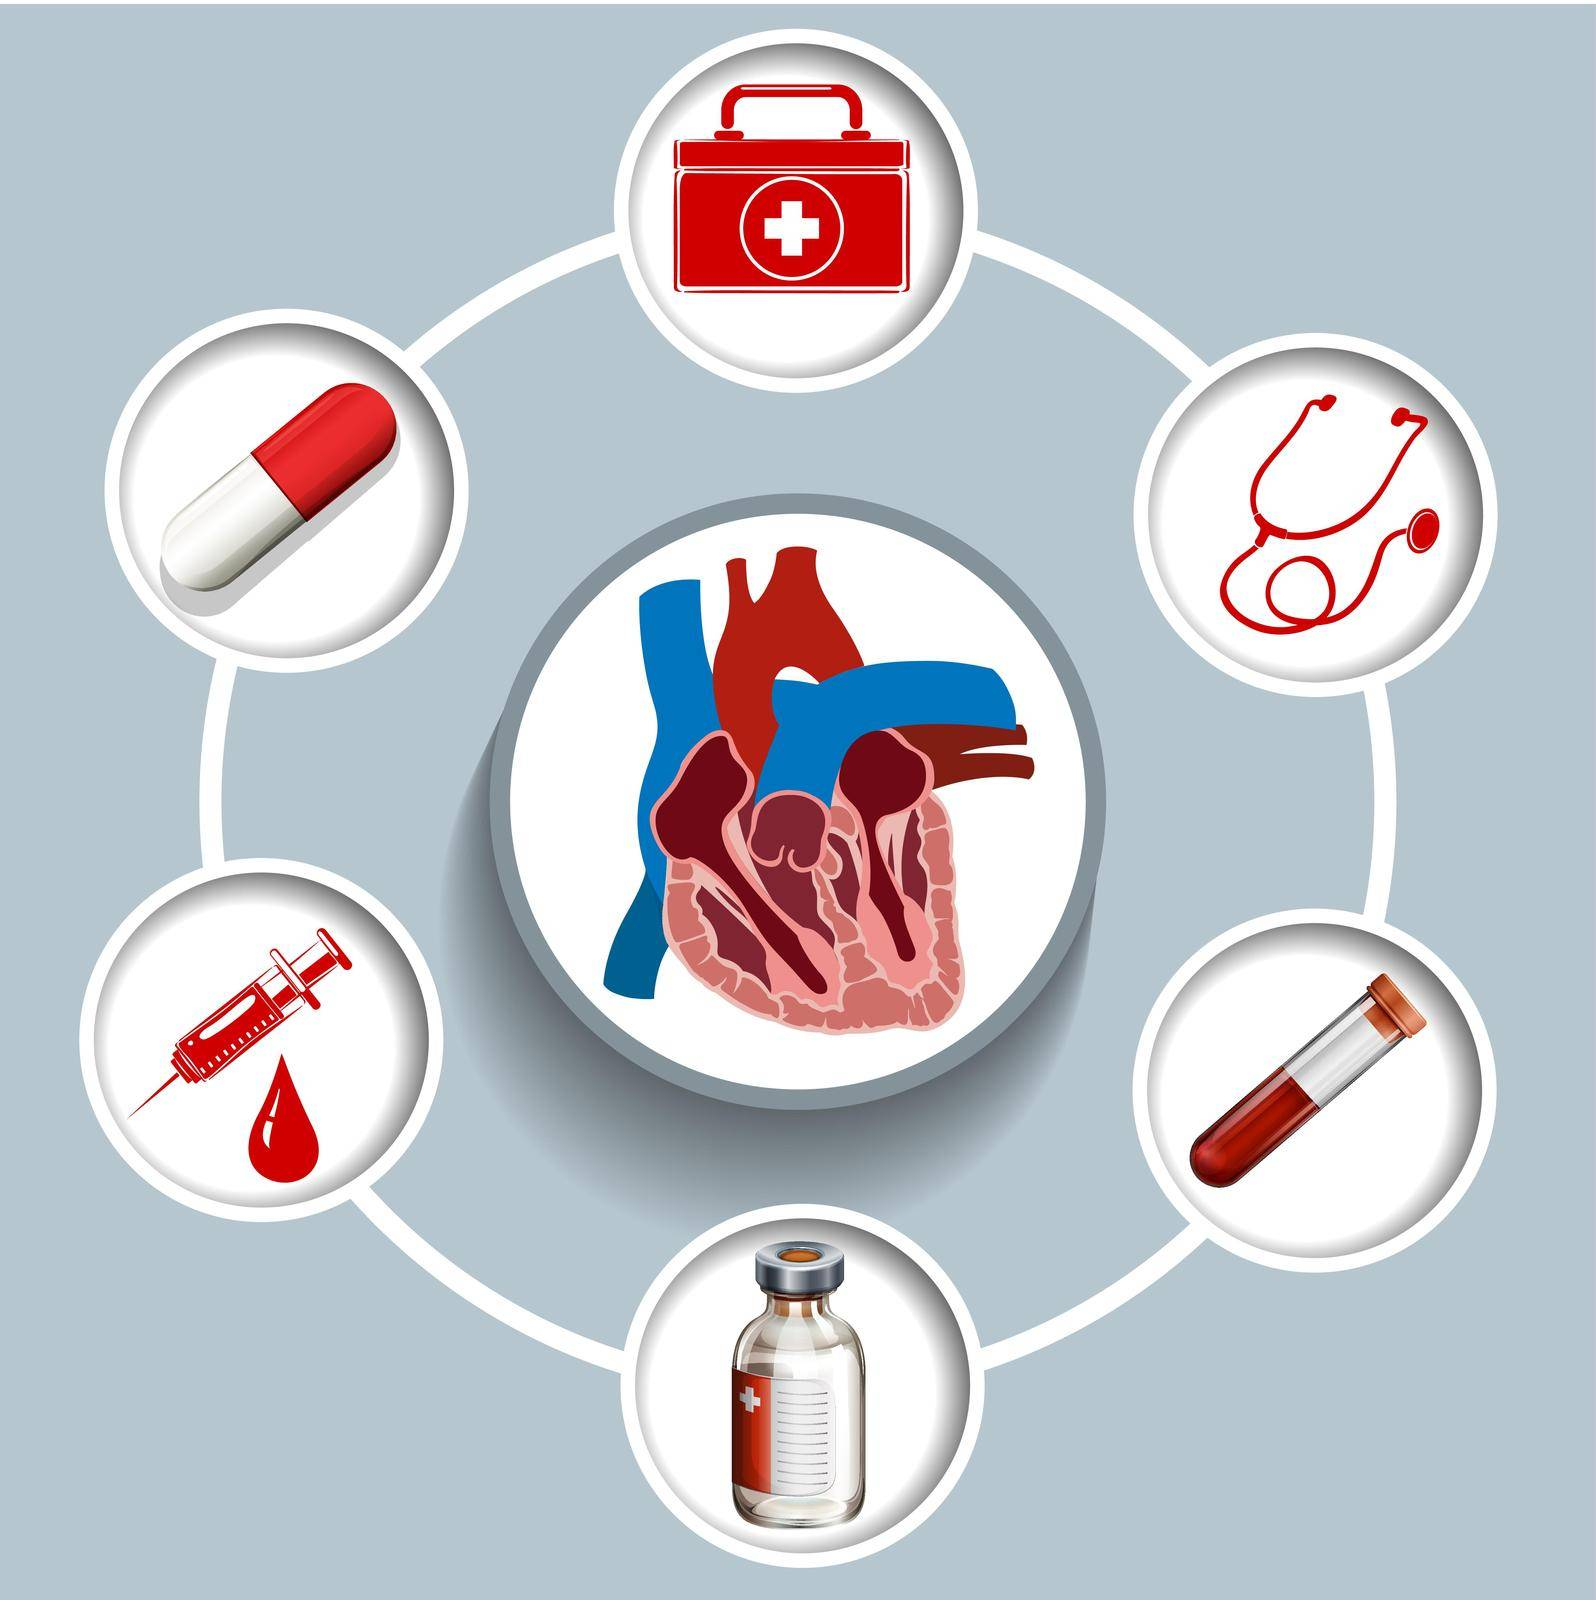 Infographic with medical equipment  illustration